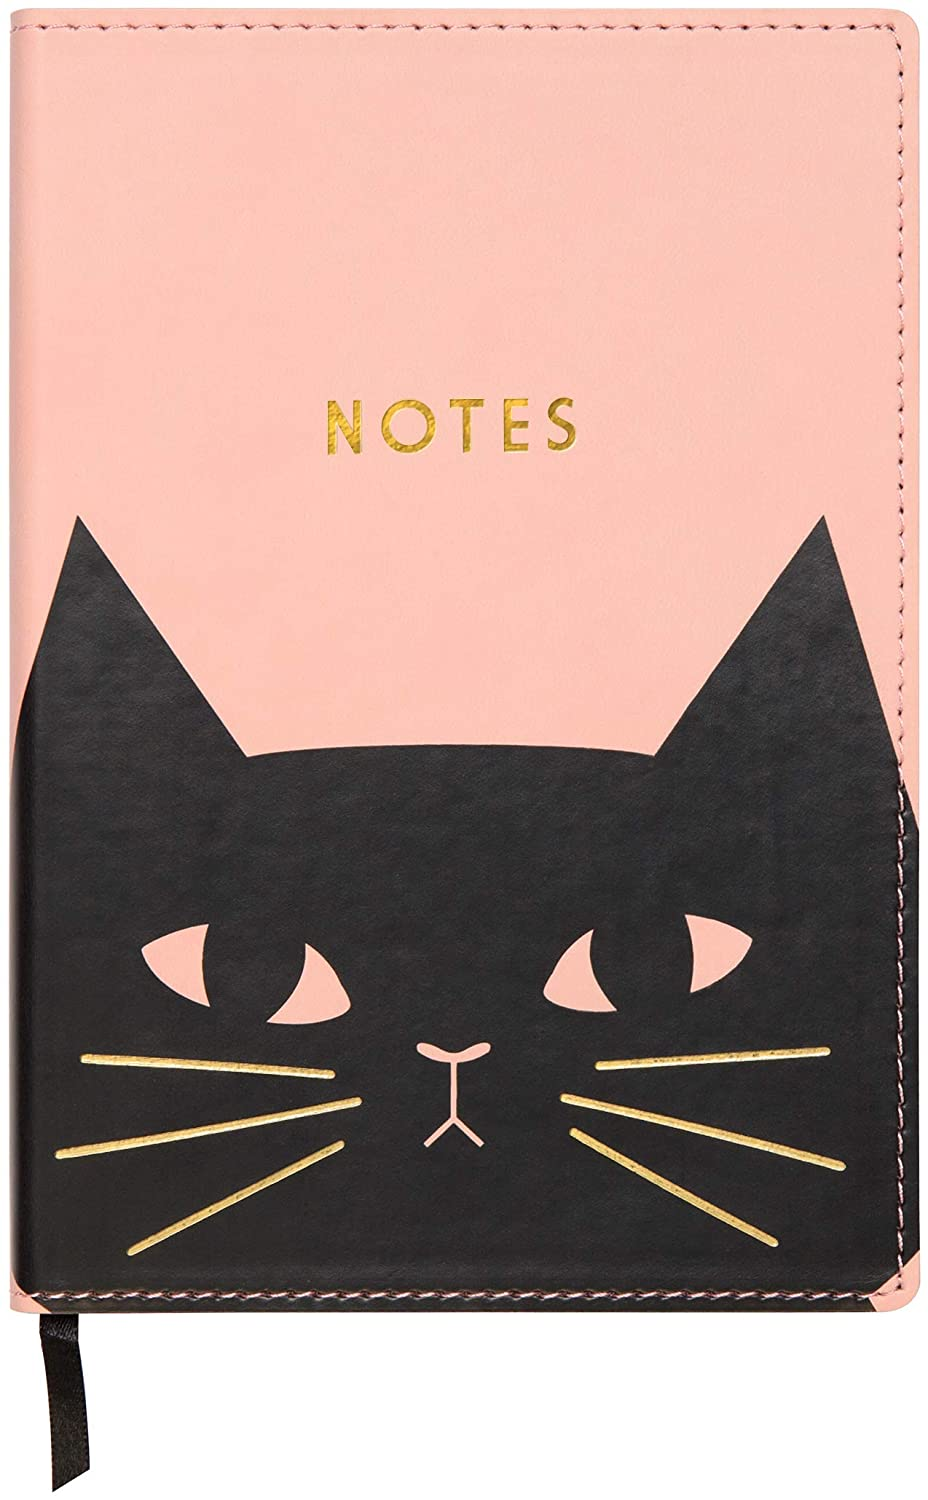 C.R. Gibson Pink 'Black Cat' Leatherette Journal Notebook, 160 Pages, 5.5' x 8' (J18-18869) 5.5 x 8 (J18-18869) CR. Gibson